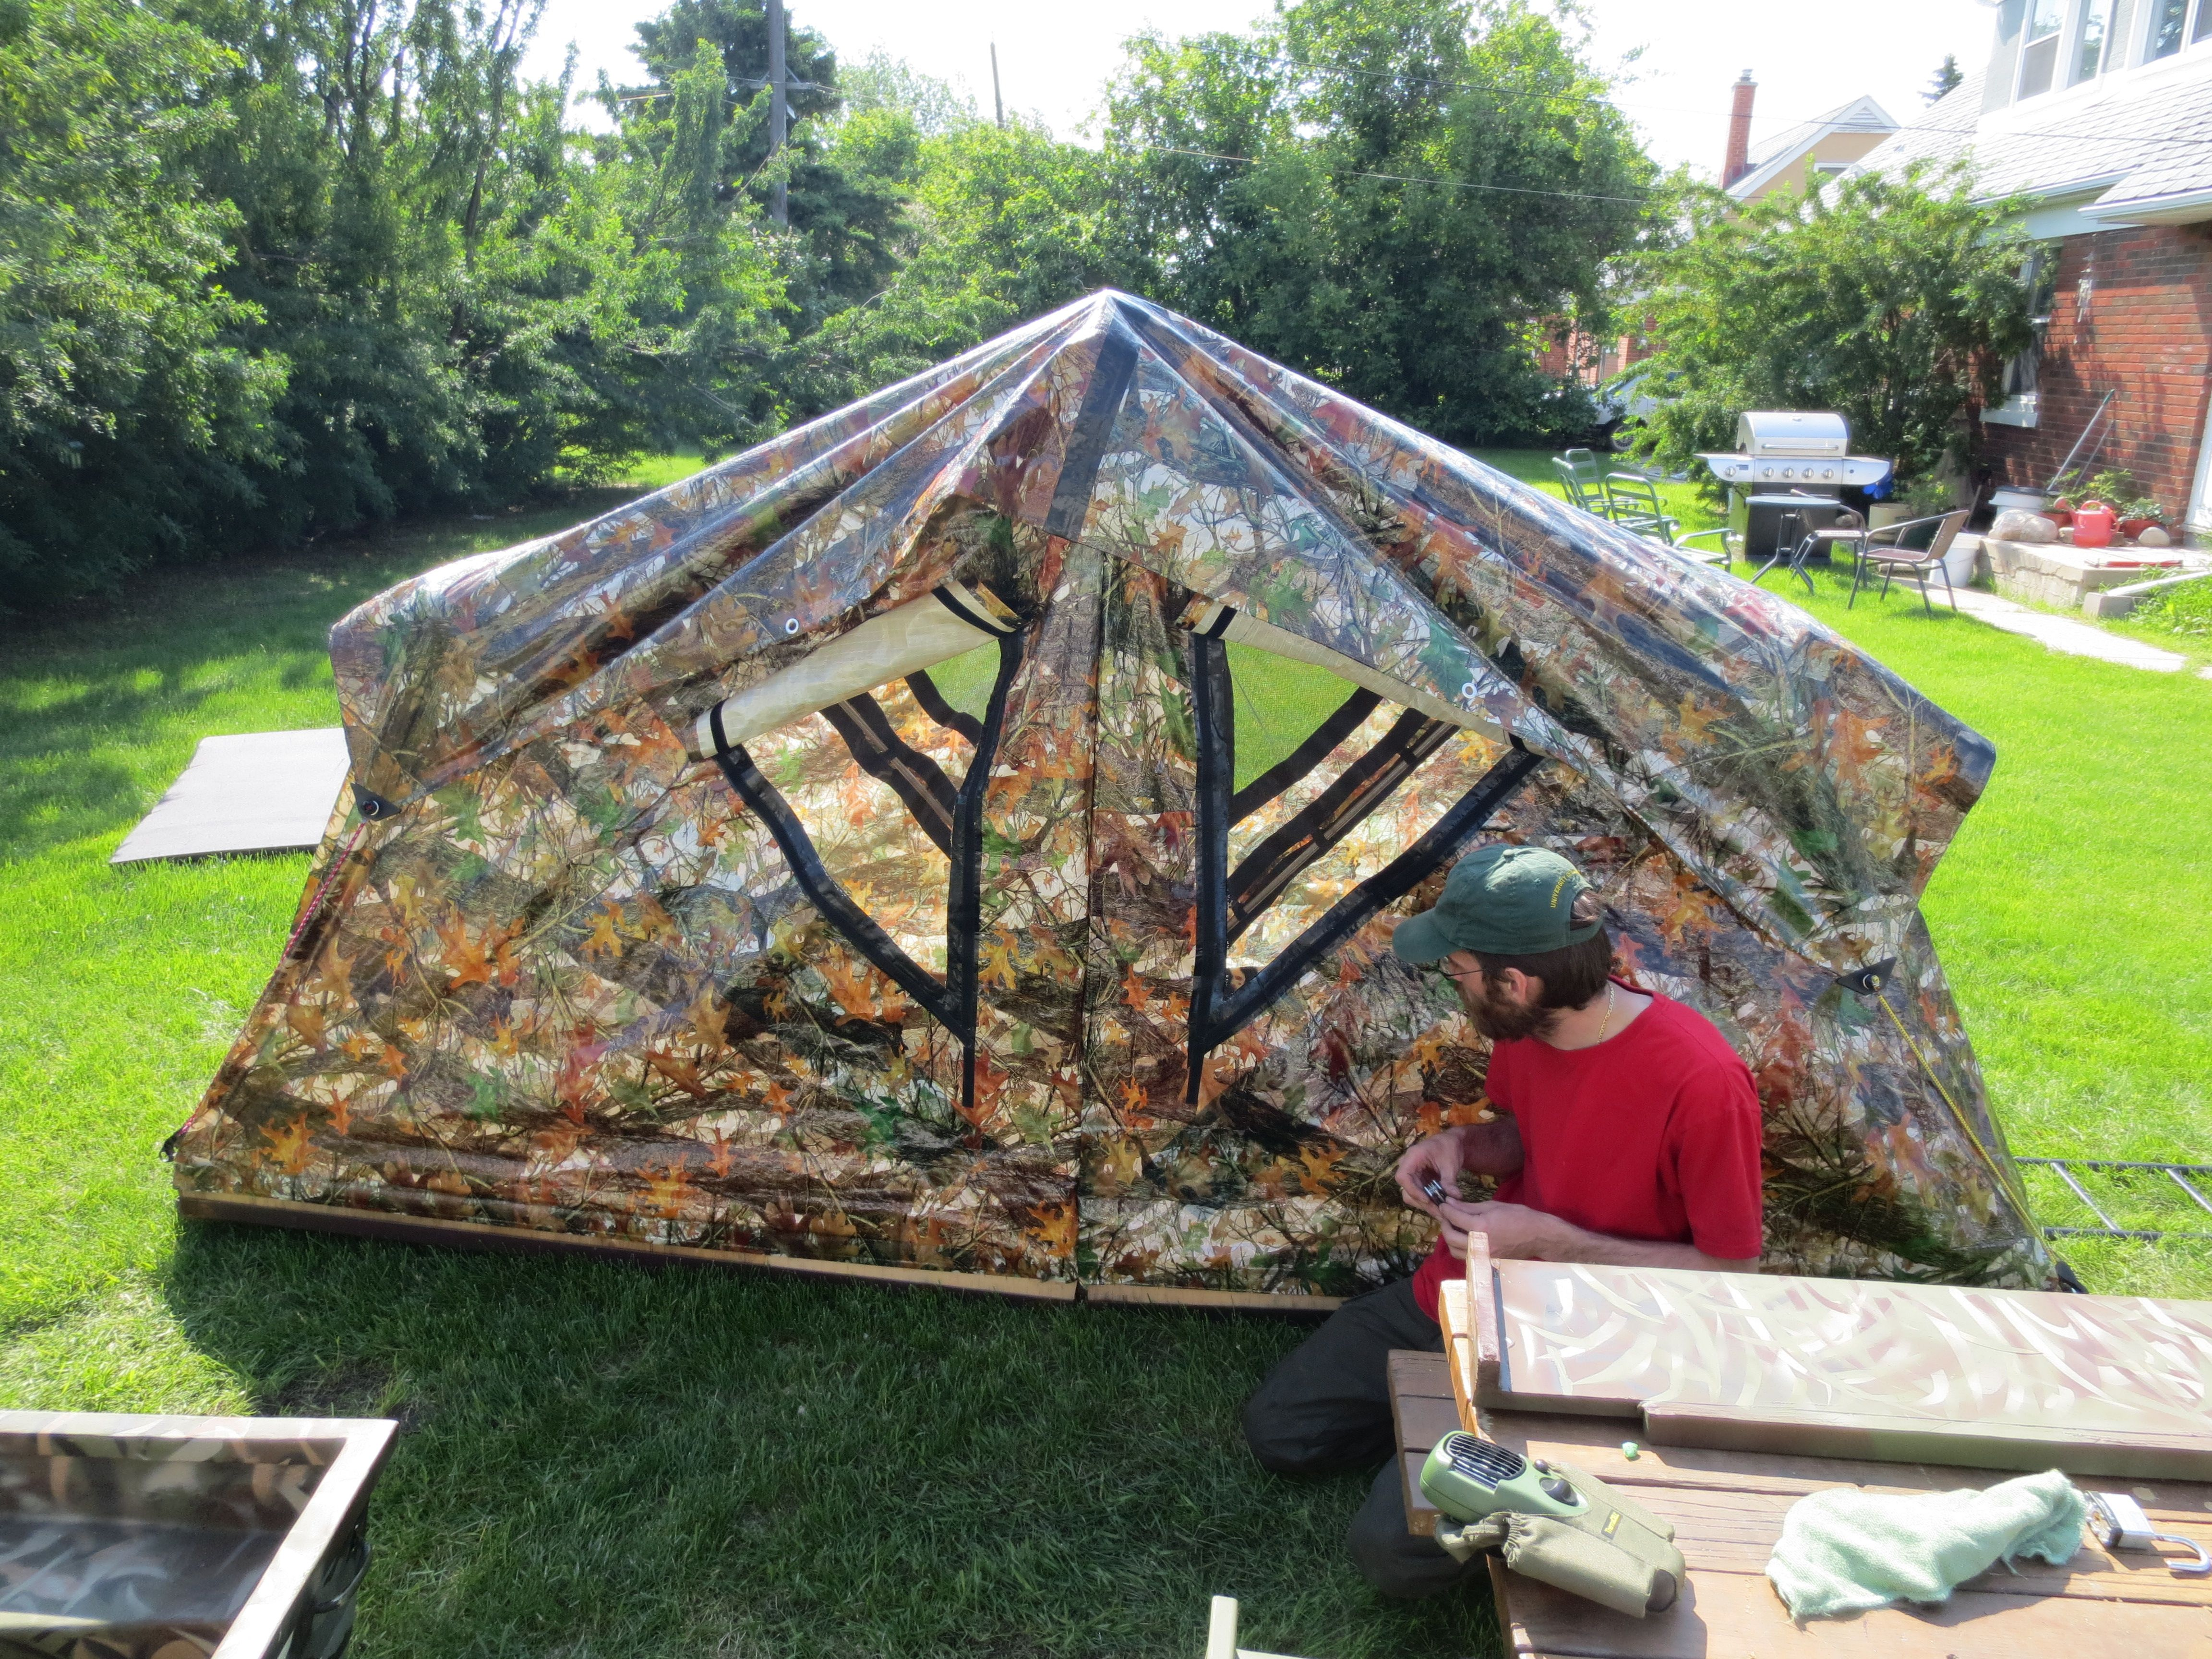 Roof top tent - DIY - Scratch build - Expedition Portal & Roof top tent - DIY - Scratch build - Expedition Portal | tent car ...